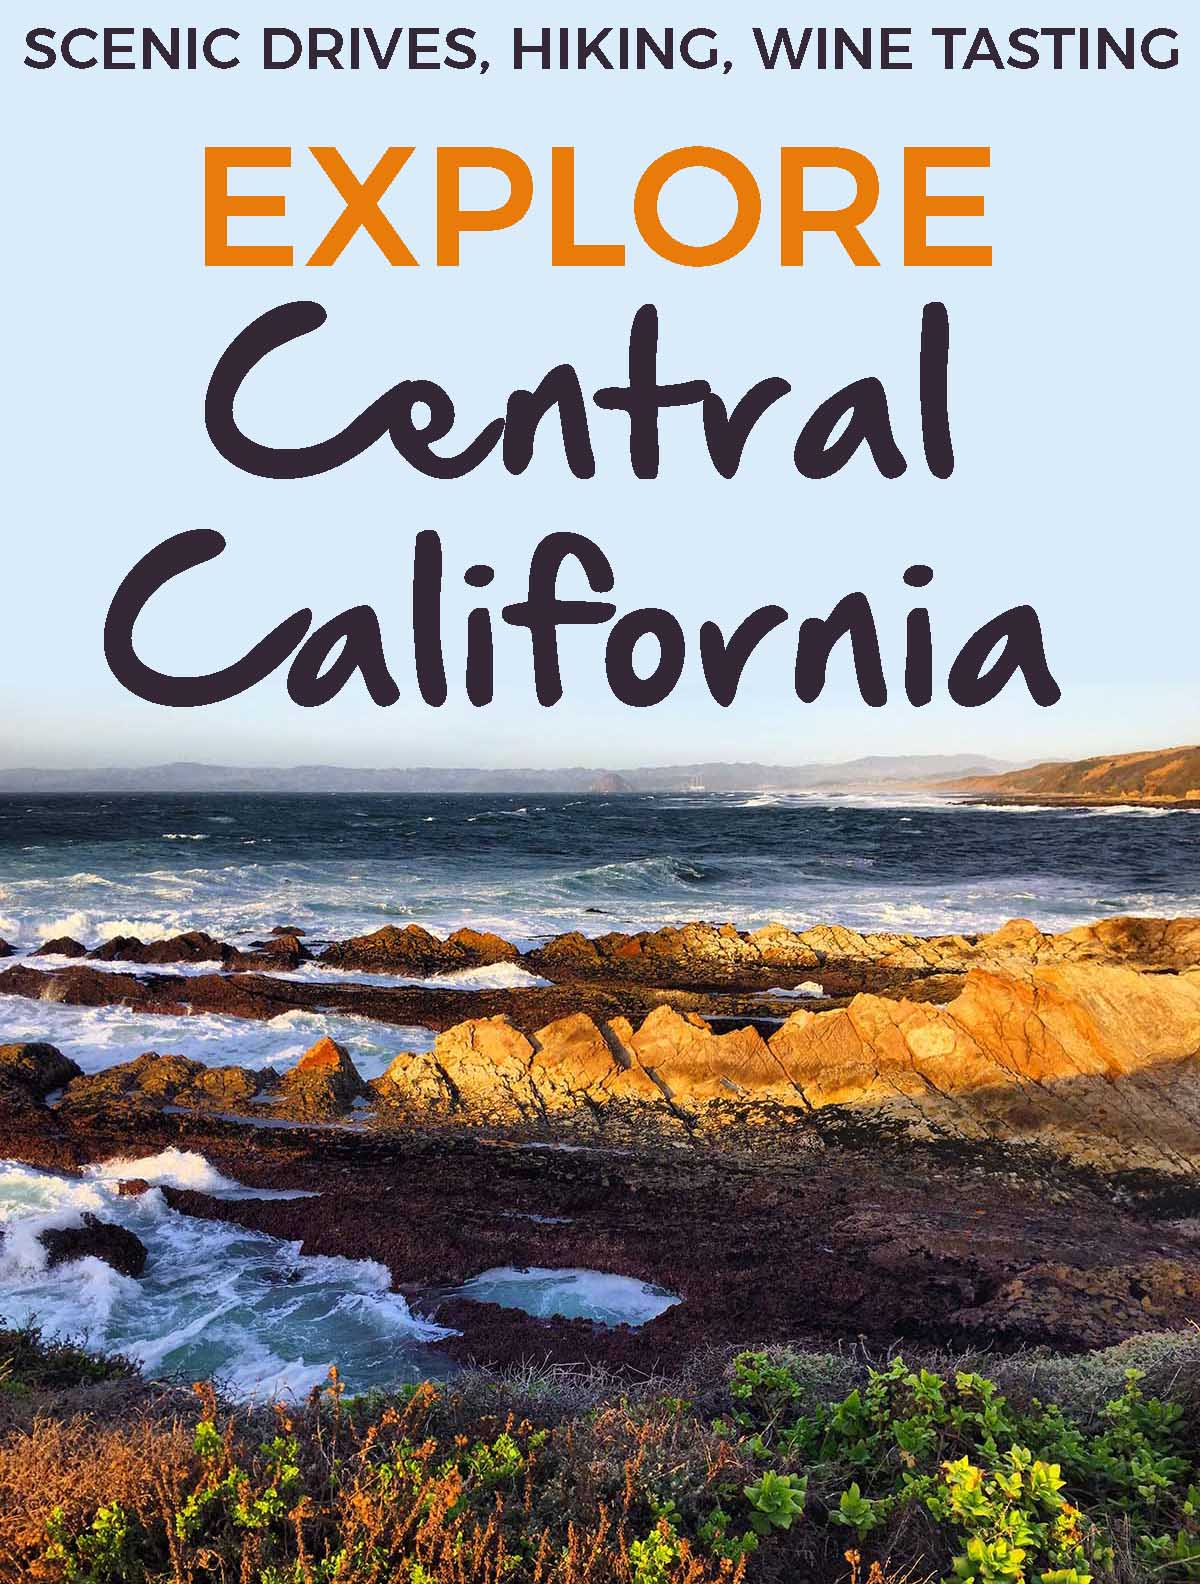 explore central california